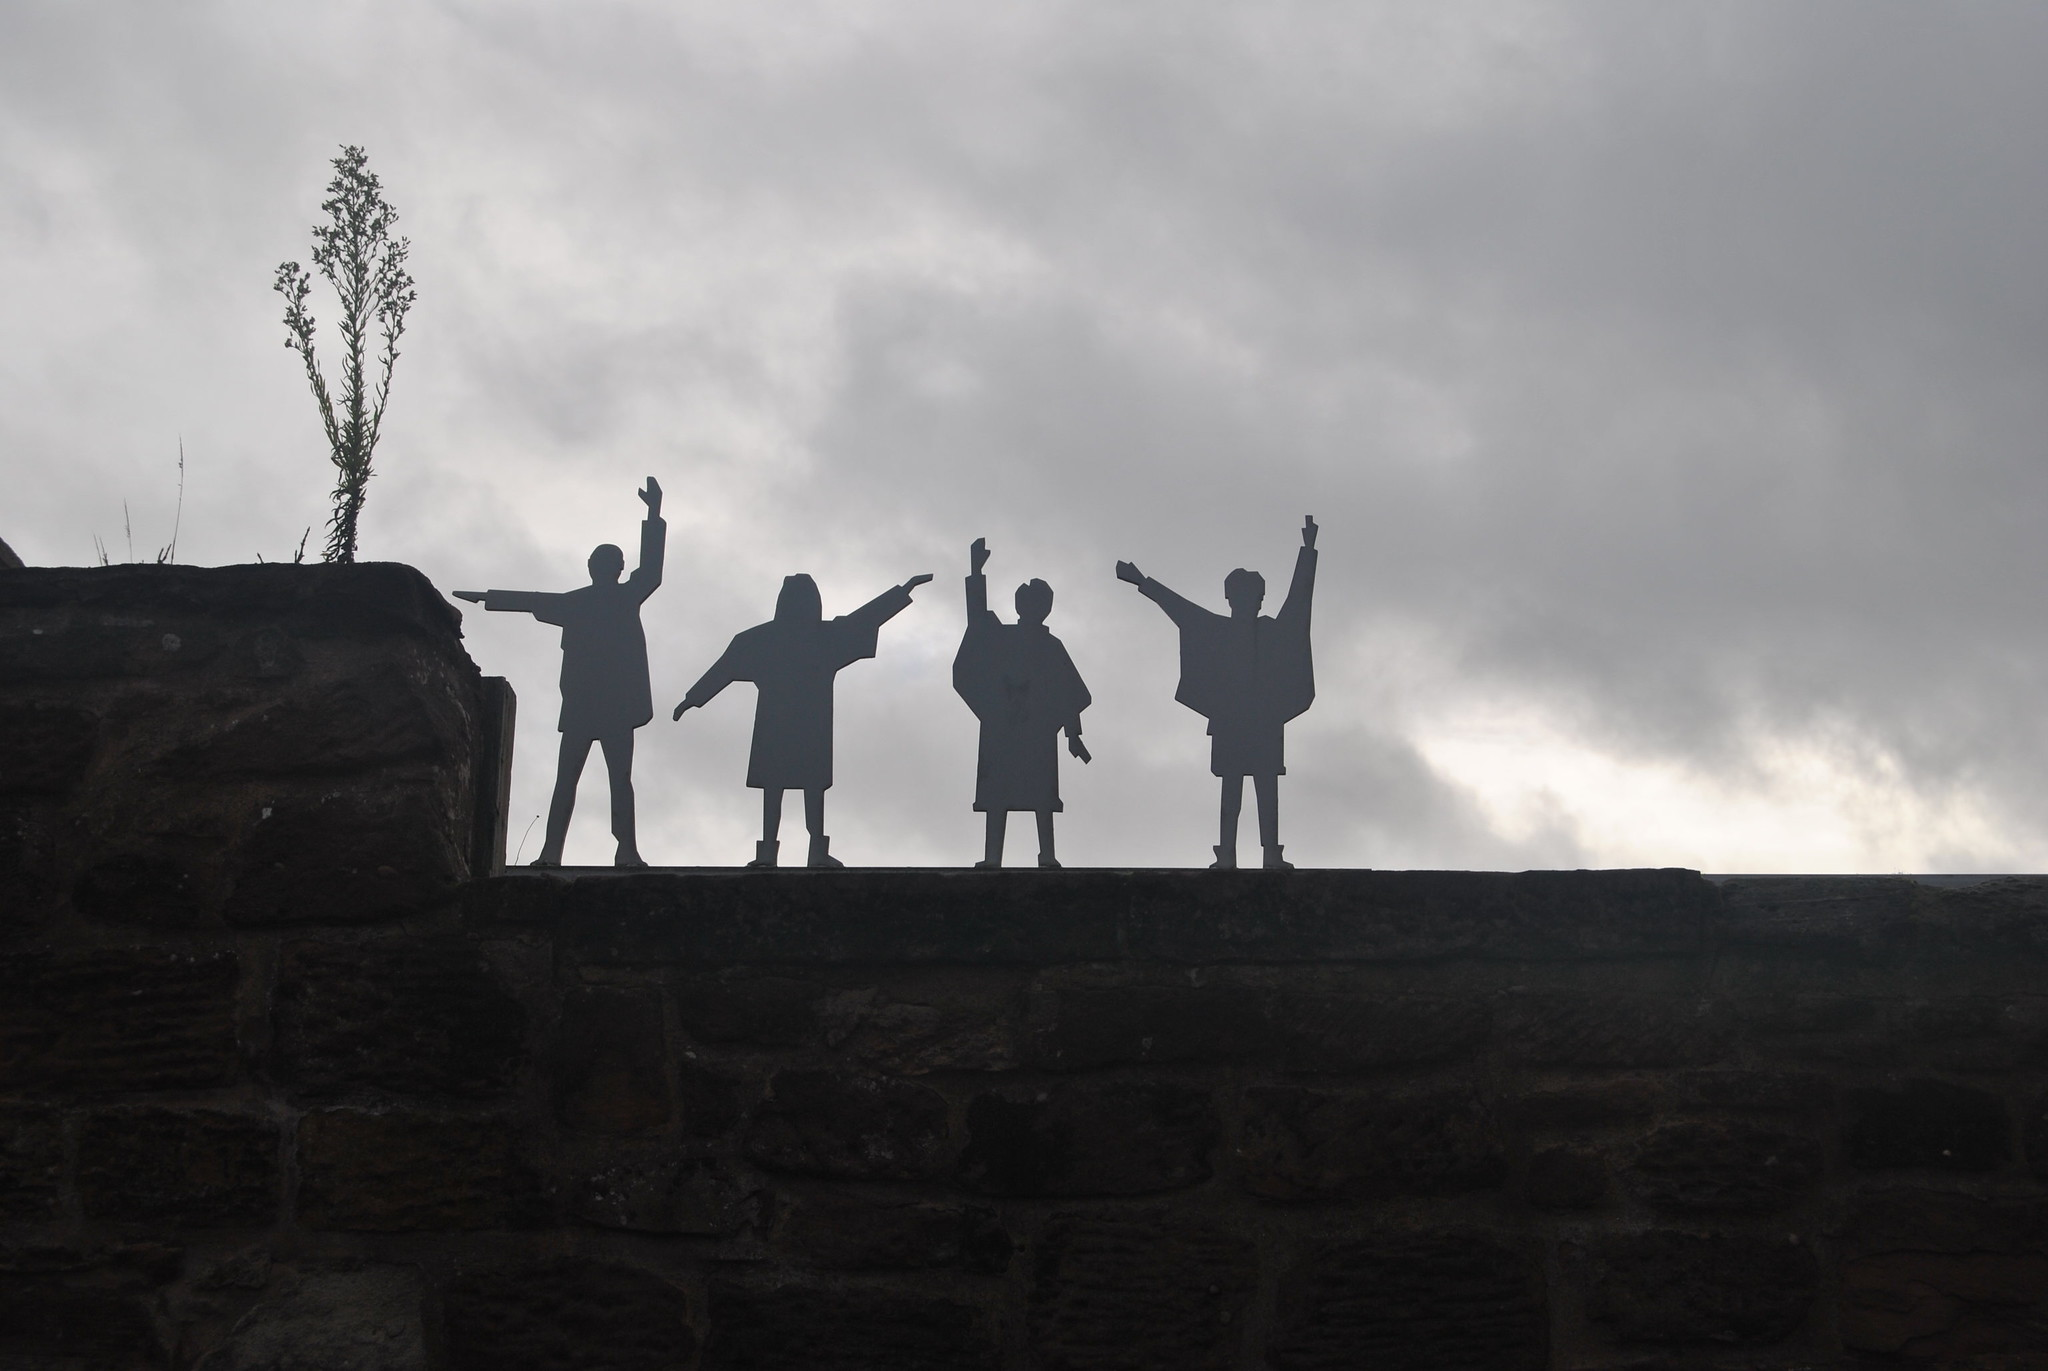 The Beatles - Help Sculpture on Wall